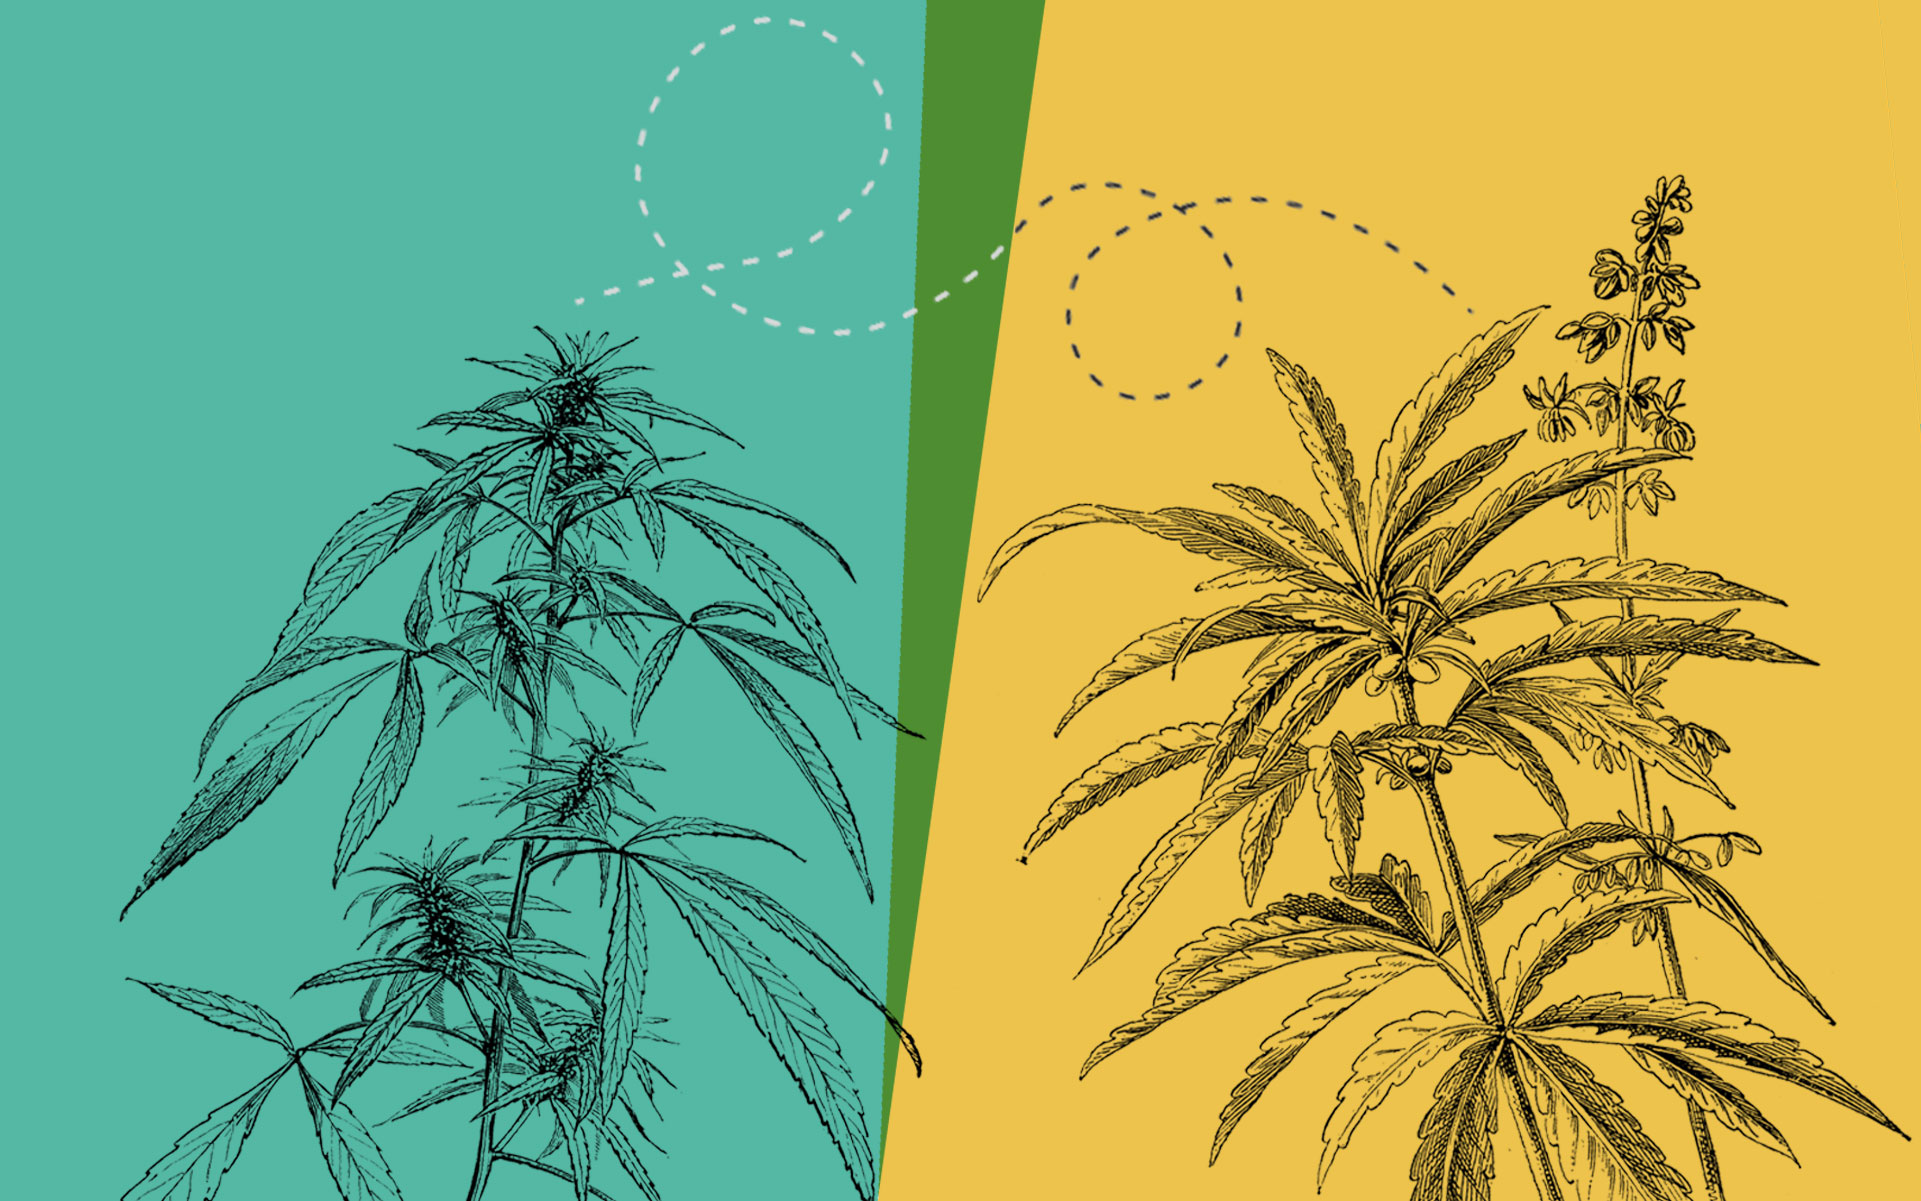 Hemp Cross-Pollination Could Damage Cannabis Crops—Here's How to Prevent It thumbnail